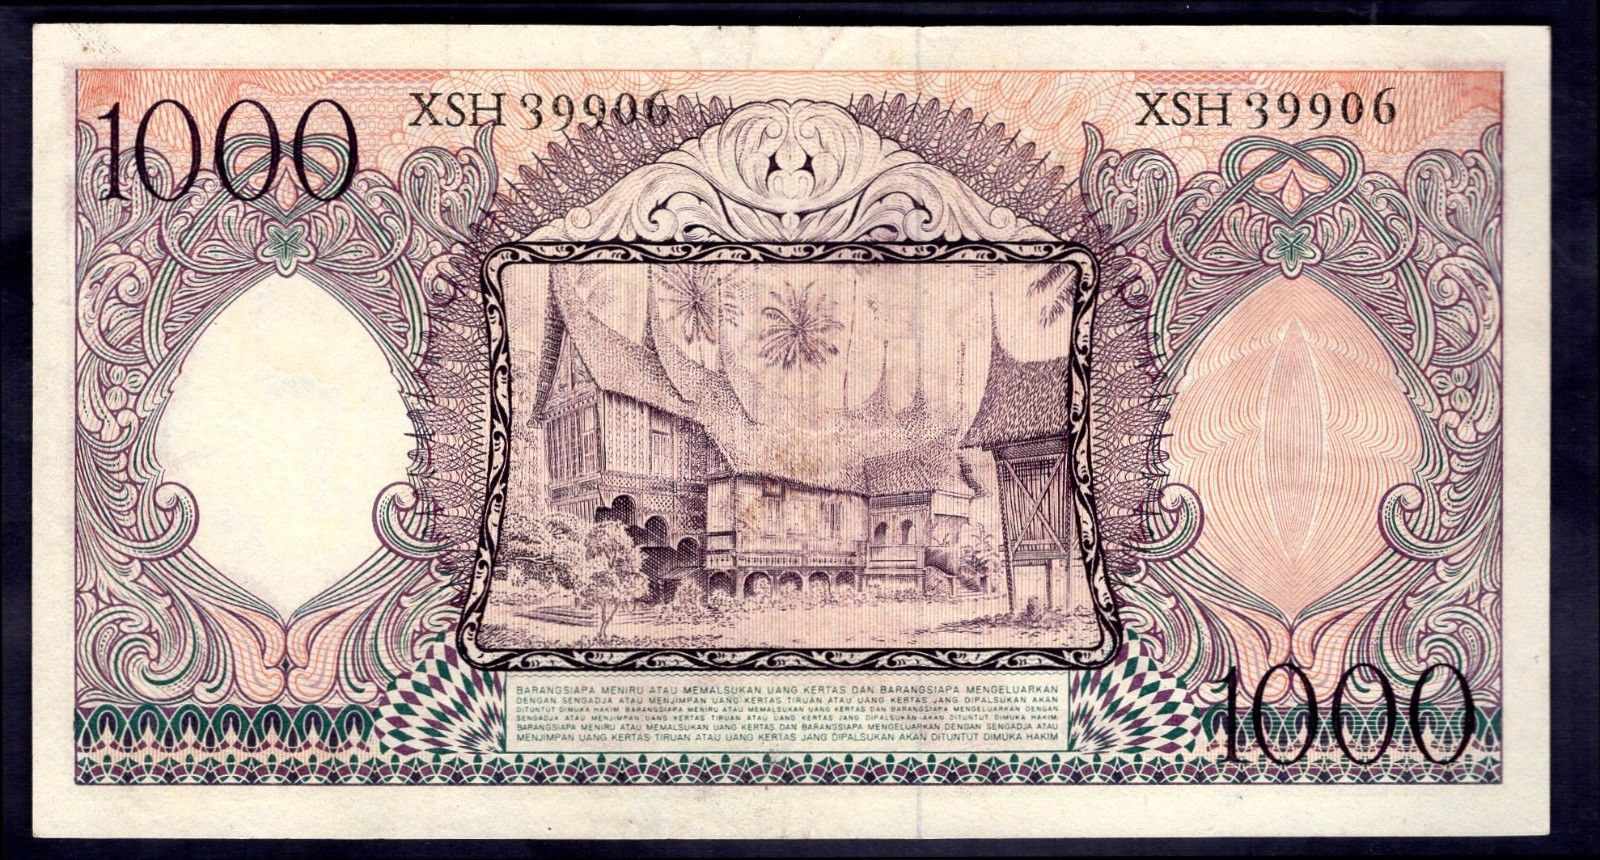 Indonesia 1 000 Rupiah Xsh 39906 1958 Very Fine Or Better M Veissid Co